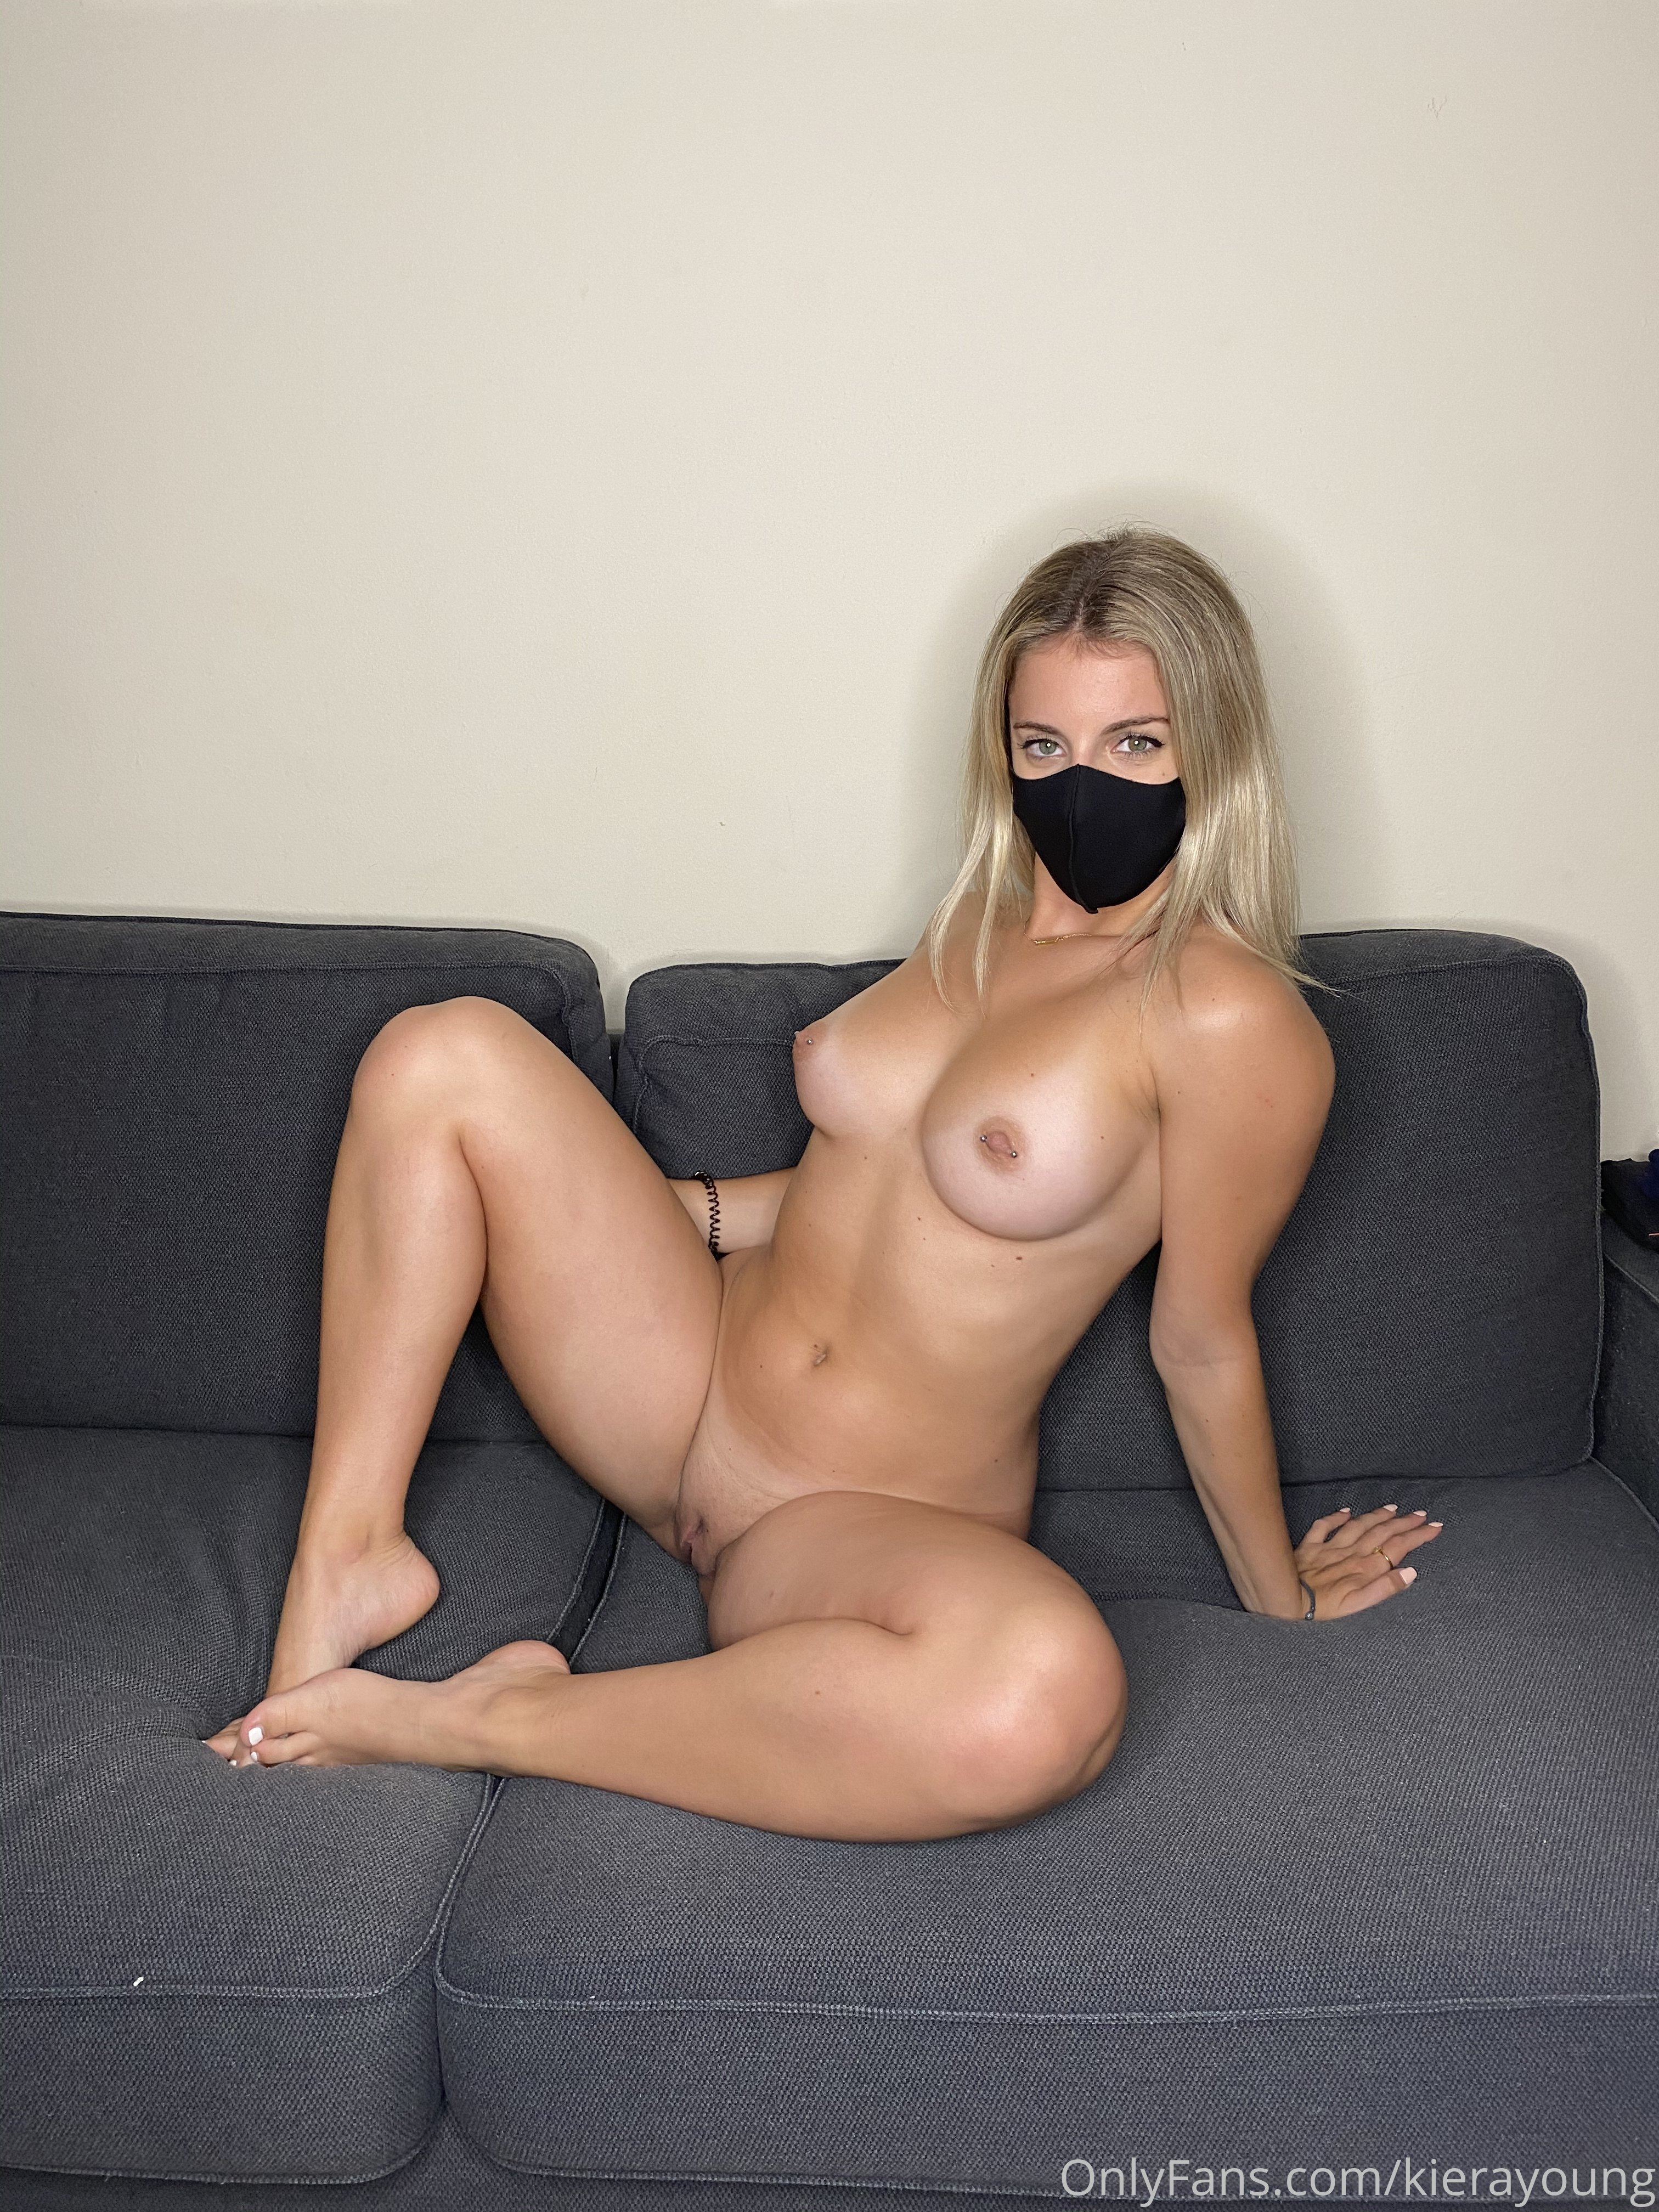 Kiera Young Onlyfans 0002